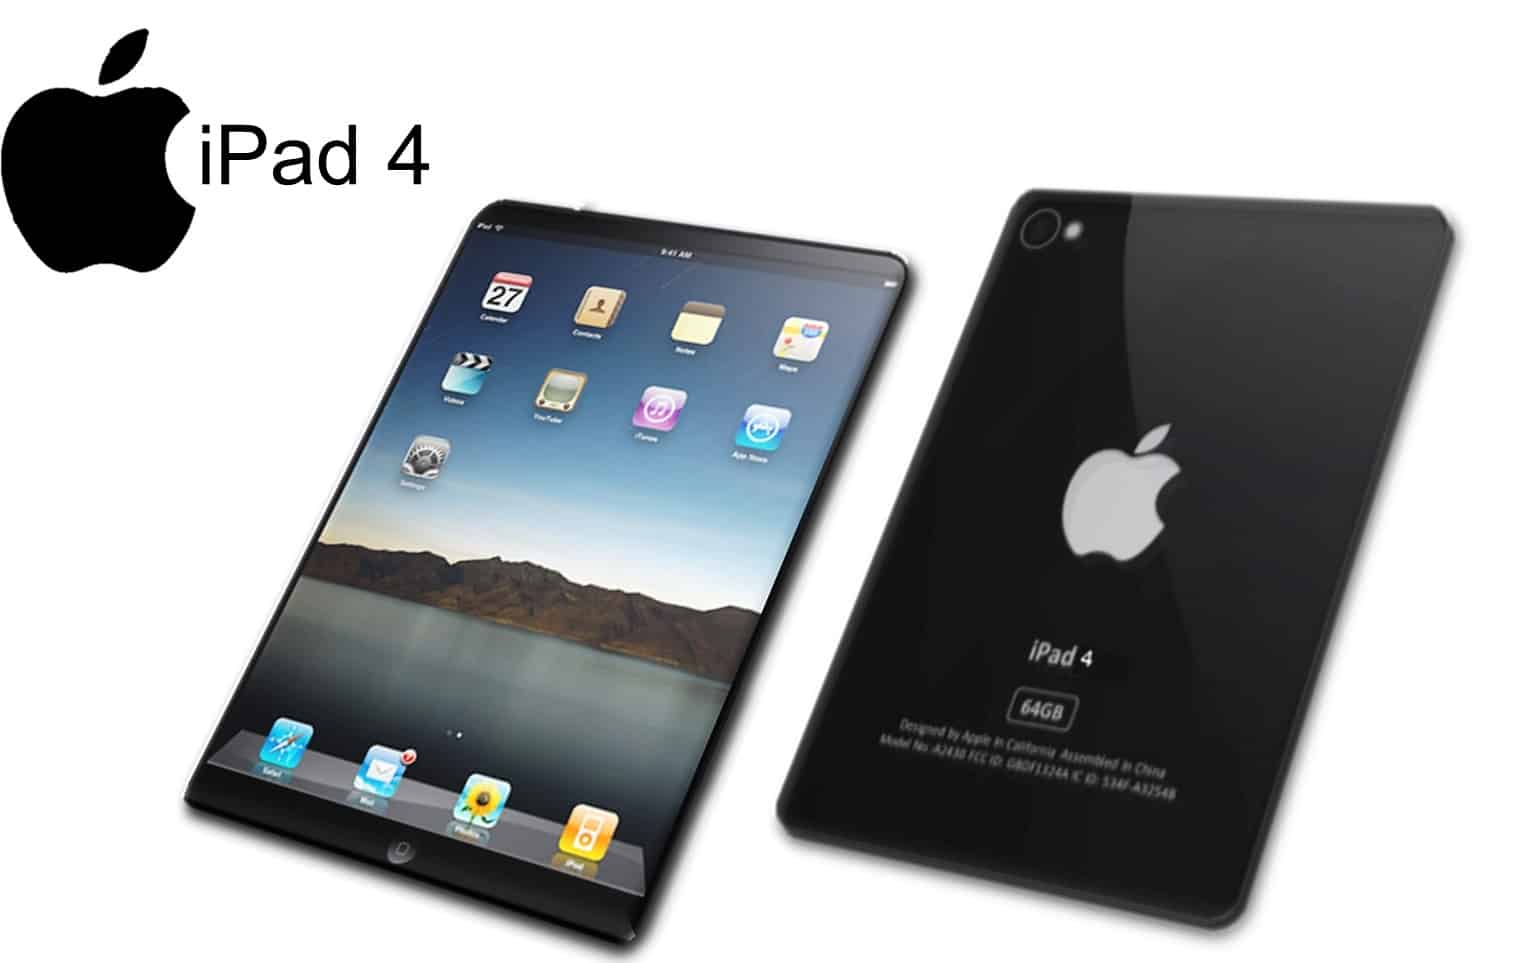 ipad4-features